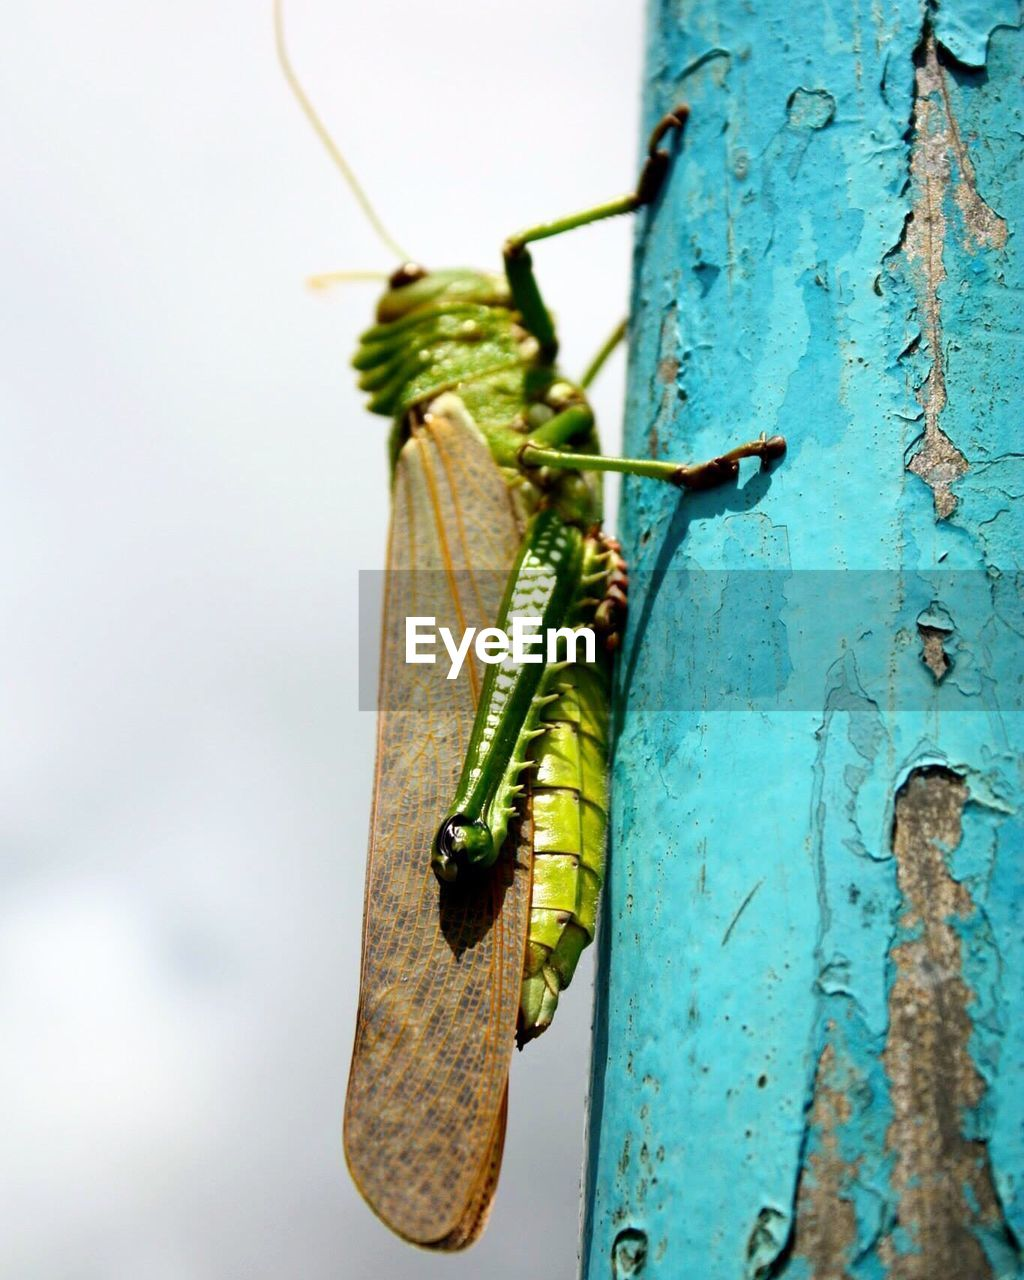 invertebrate, close-up, green color, insect, focus on foreground, plant, animals in the wild, animal wildlife, no people, animal themes, animal, day, nature, one animal, wood - material, tree, outdoors, tree trunk, hanging, beauty in nature, butterfly - insect